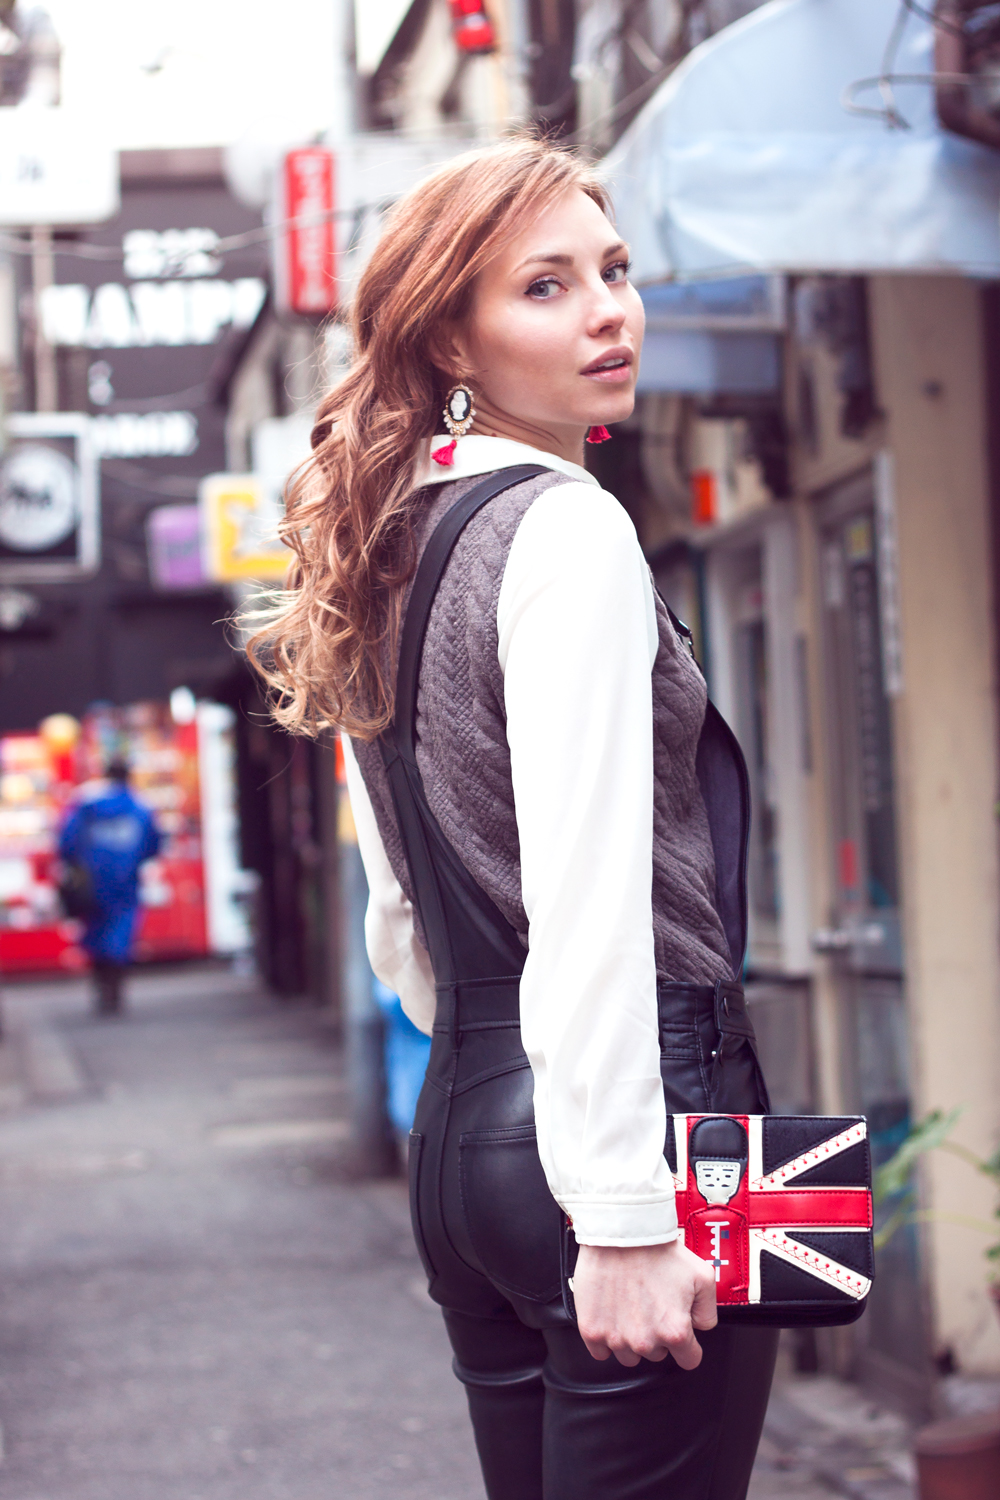 Golden Gai, Shinjuku, Tokyo, Japan, Sightseeing, leather, leather dungarees, brittain clutch, japanese fashion blogger, curls